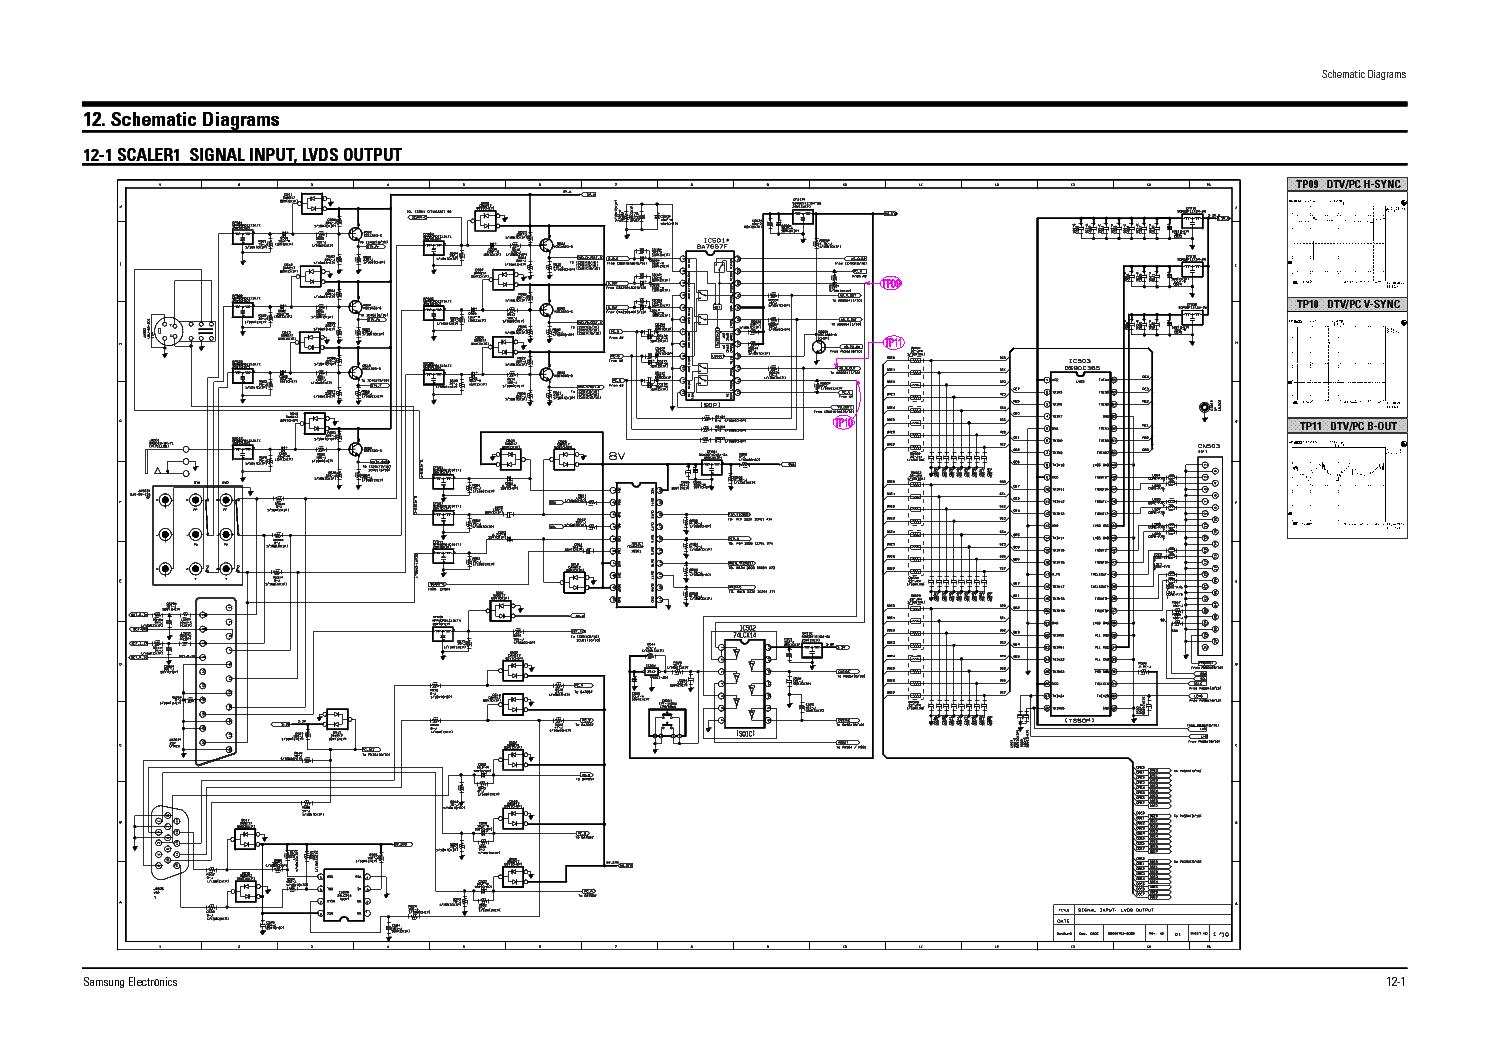 Lg Service Manuals  Schematics  Circuit Diagrams  Parts Lists together with 1993 Ford Crown Victoria  partment Fuse Box Diagram additionally Led Tv Diagram together with Switching power supply atx further Samsung Schematic Diagrams For Electric Range. on toshiba tv wiring diagrams